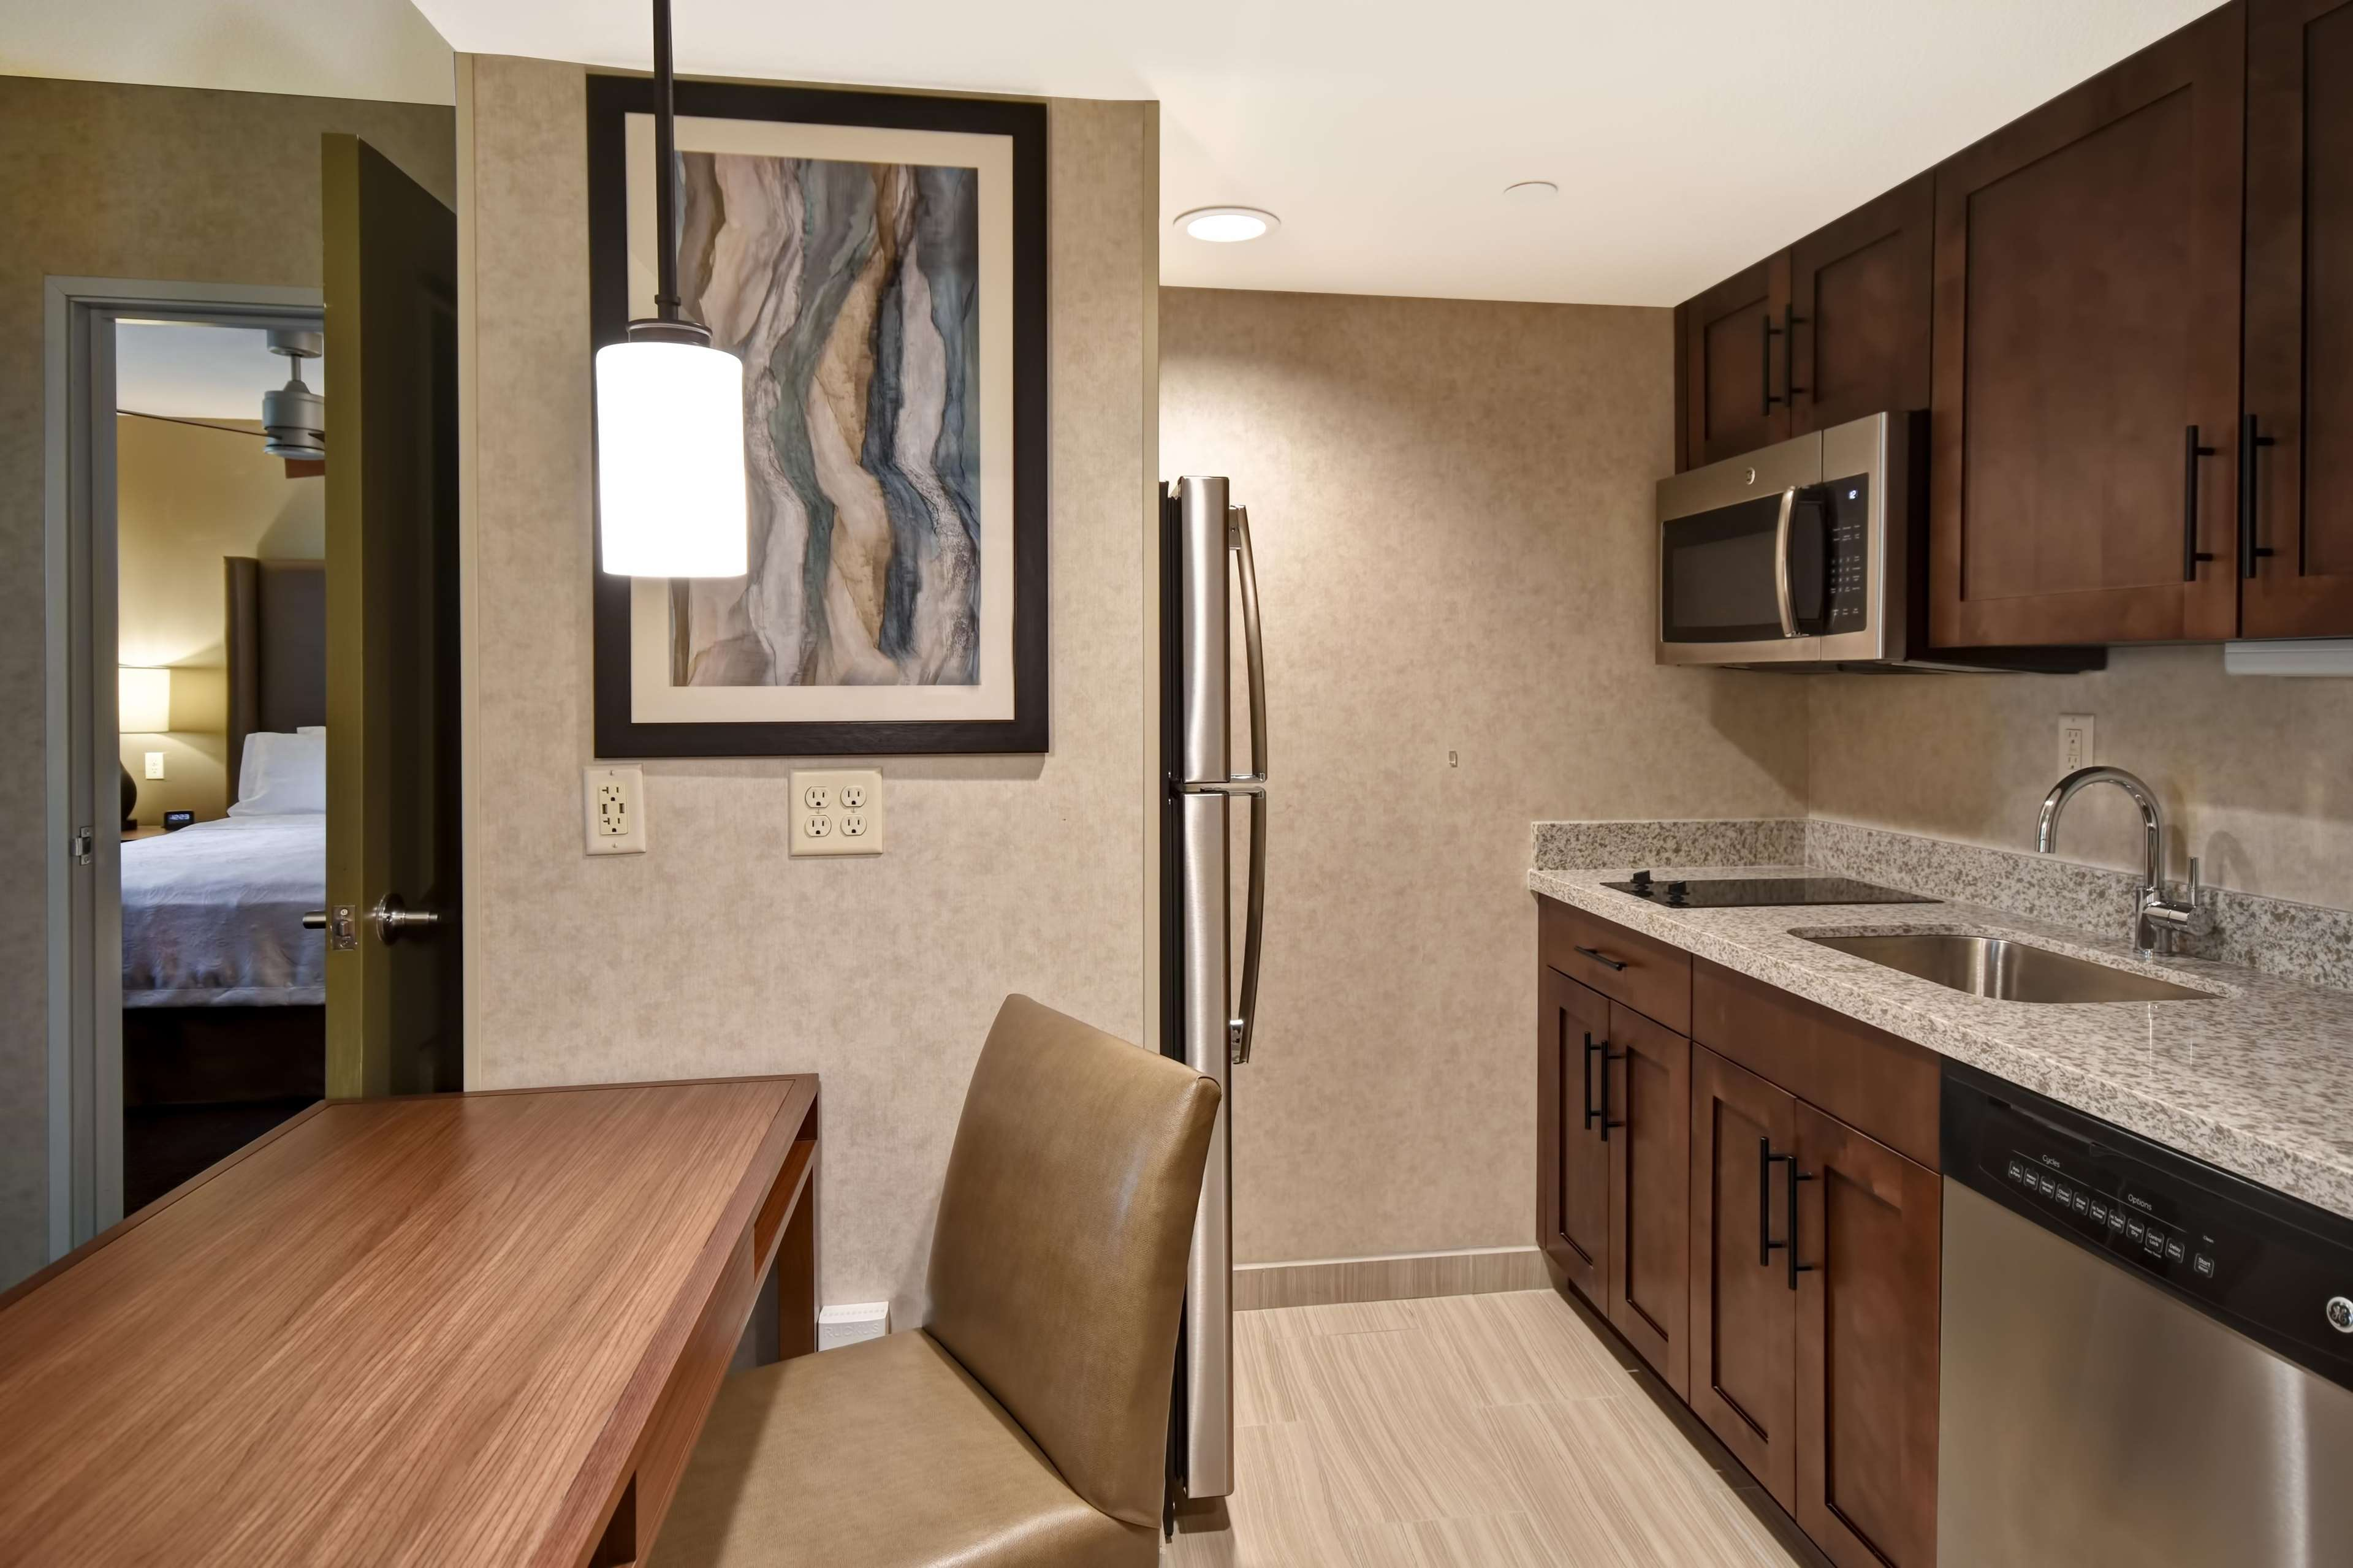 Homewood Suites by Hilton Pleasant Hill Concord image 6